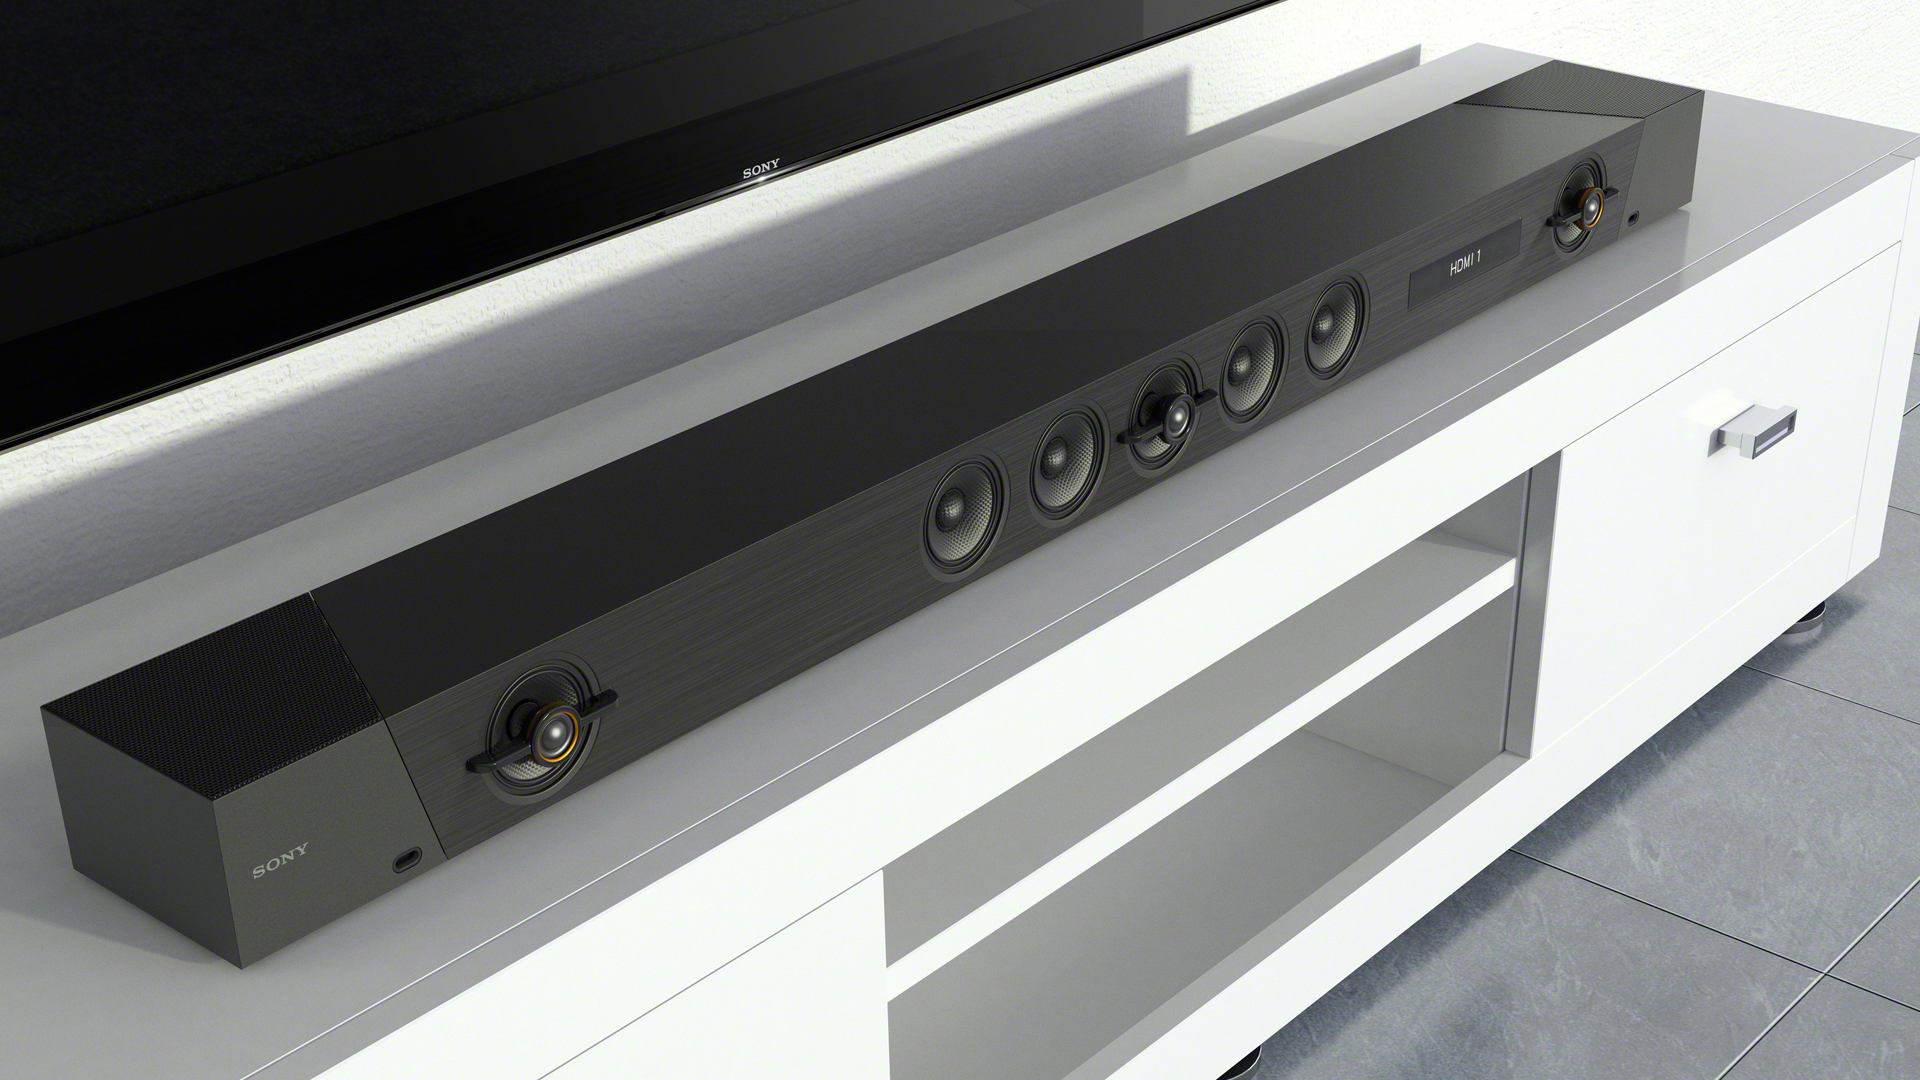 Best soundbars for TV, movies and music in India